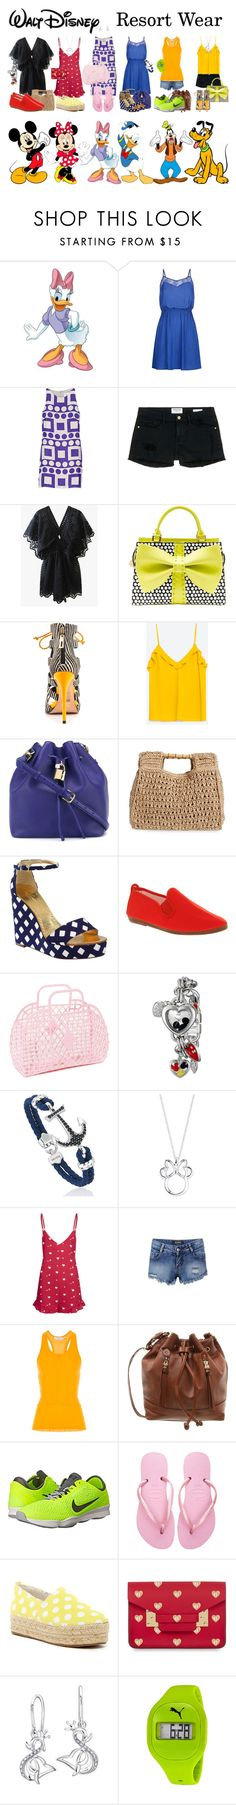 """""""Walt Disney Resort Wear (The Gang)"""" by janastasiagg ❤ liked on Polyvore featuring Disney, RoomMates Decor, Milly, Frame Denim, Betsey Johnson, Schutz, Dolce&Gabbana, San Diego Hat Co., Kate Spade and Flossy"""